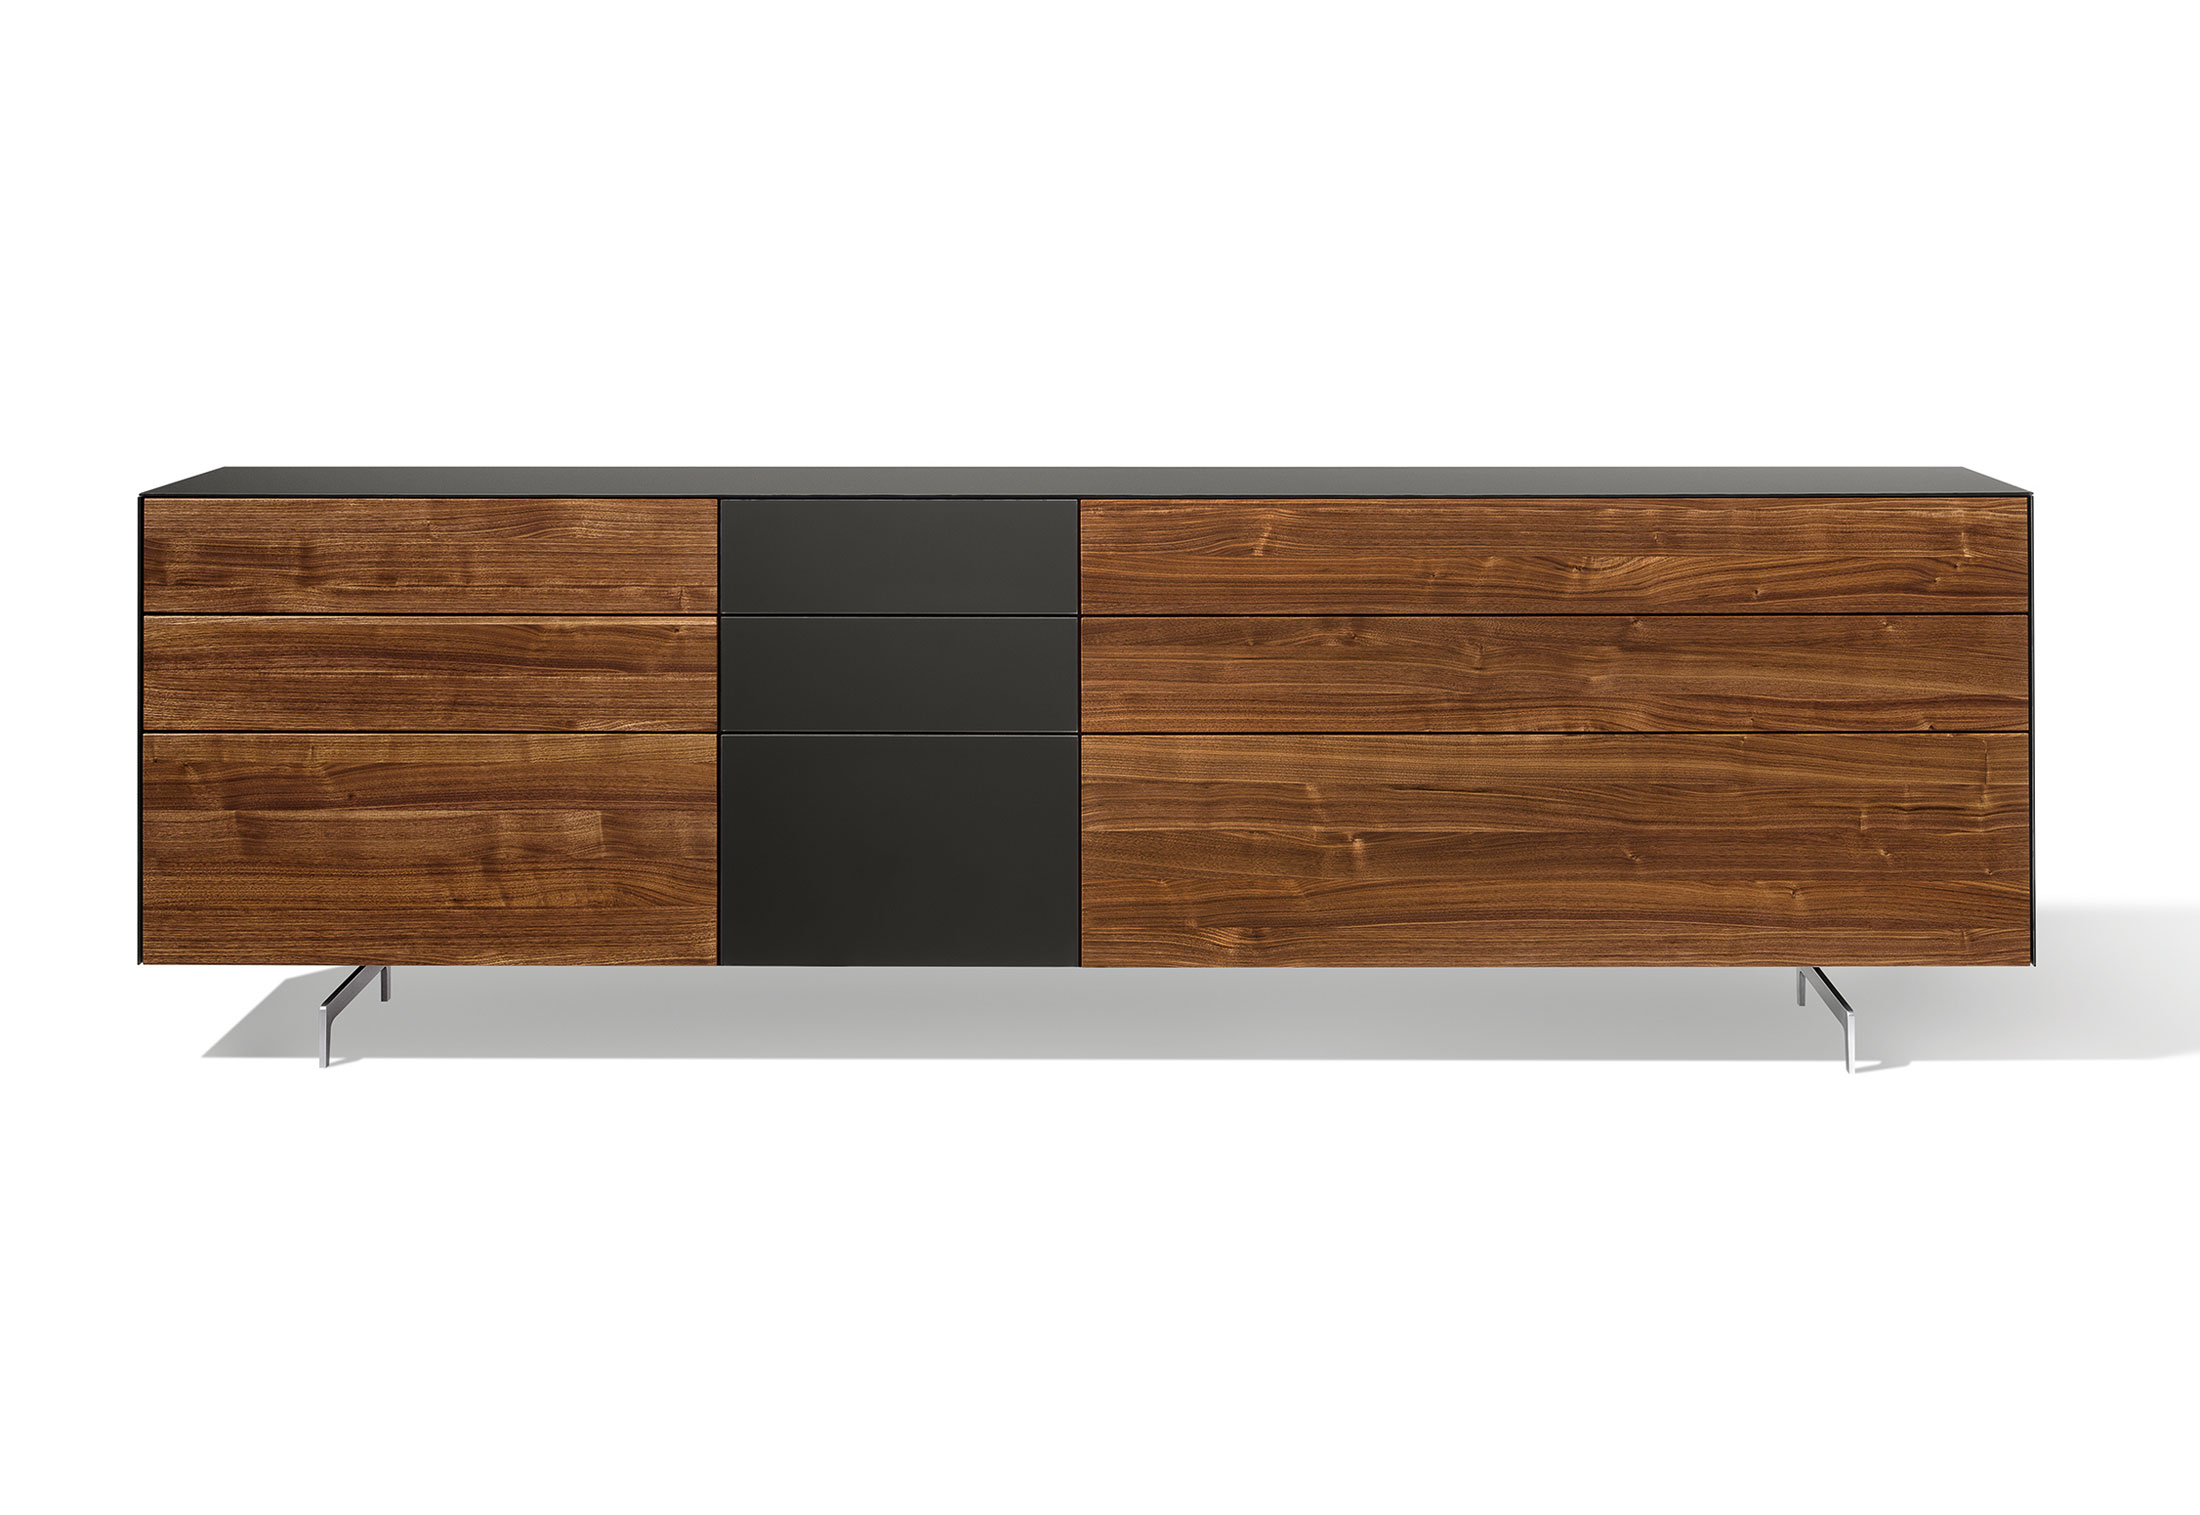 cubus pure sideboard 3 elements by team 7 stylepark. Black Bedroom Furniture Sets. Home Design Ideas